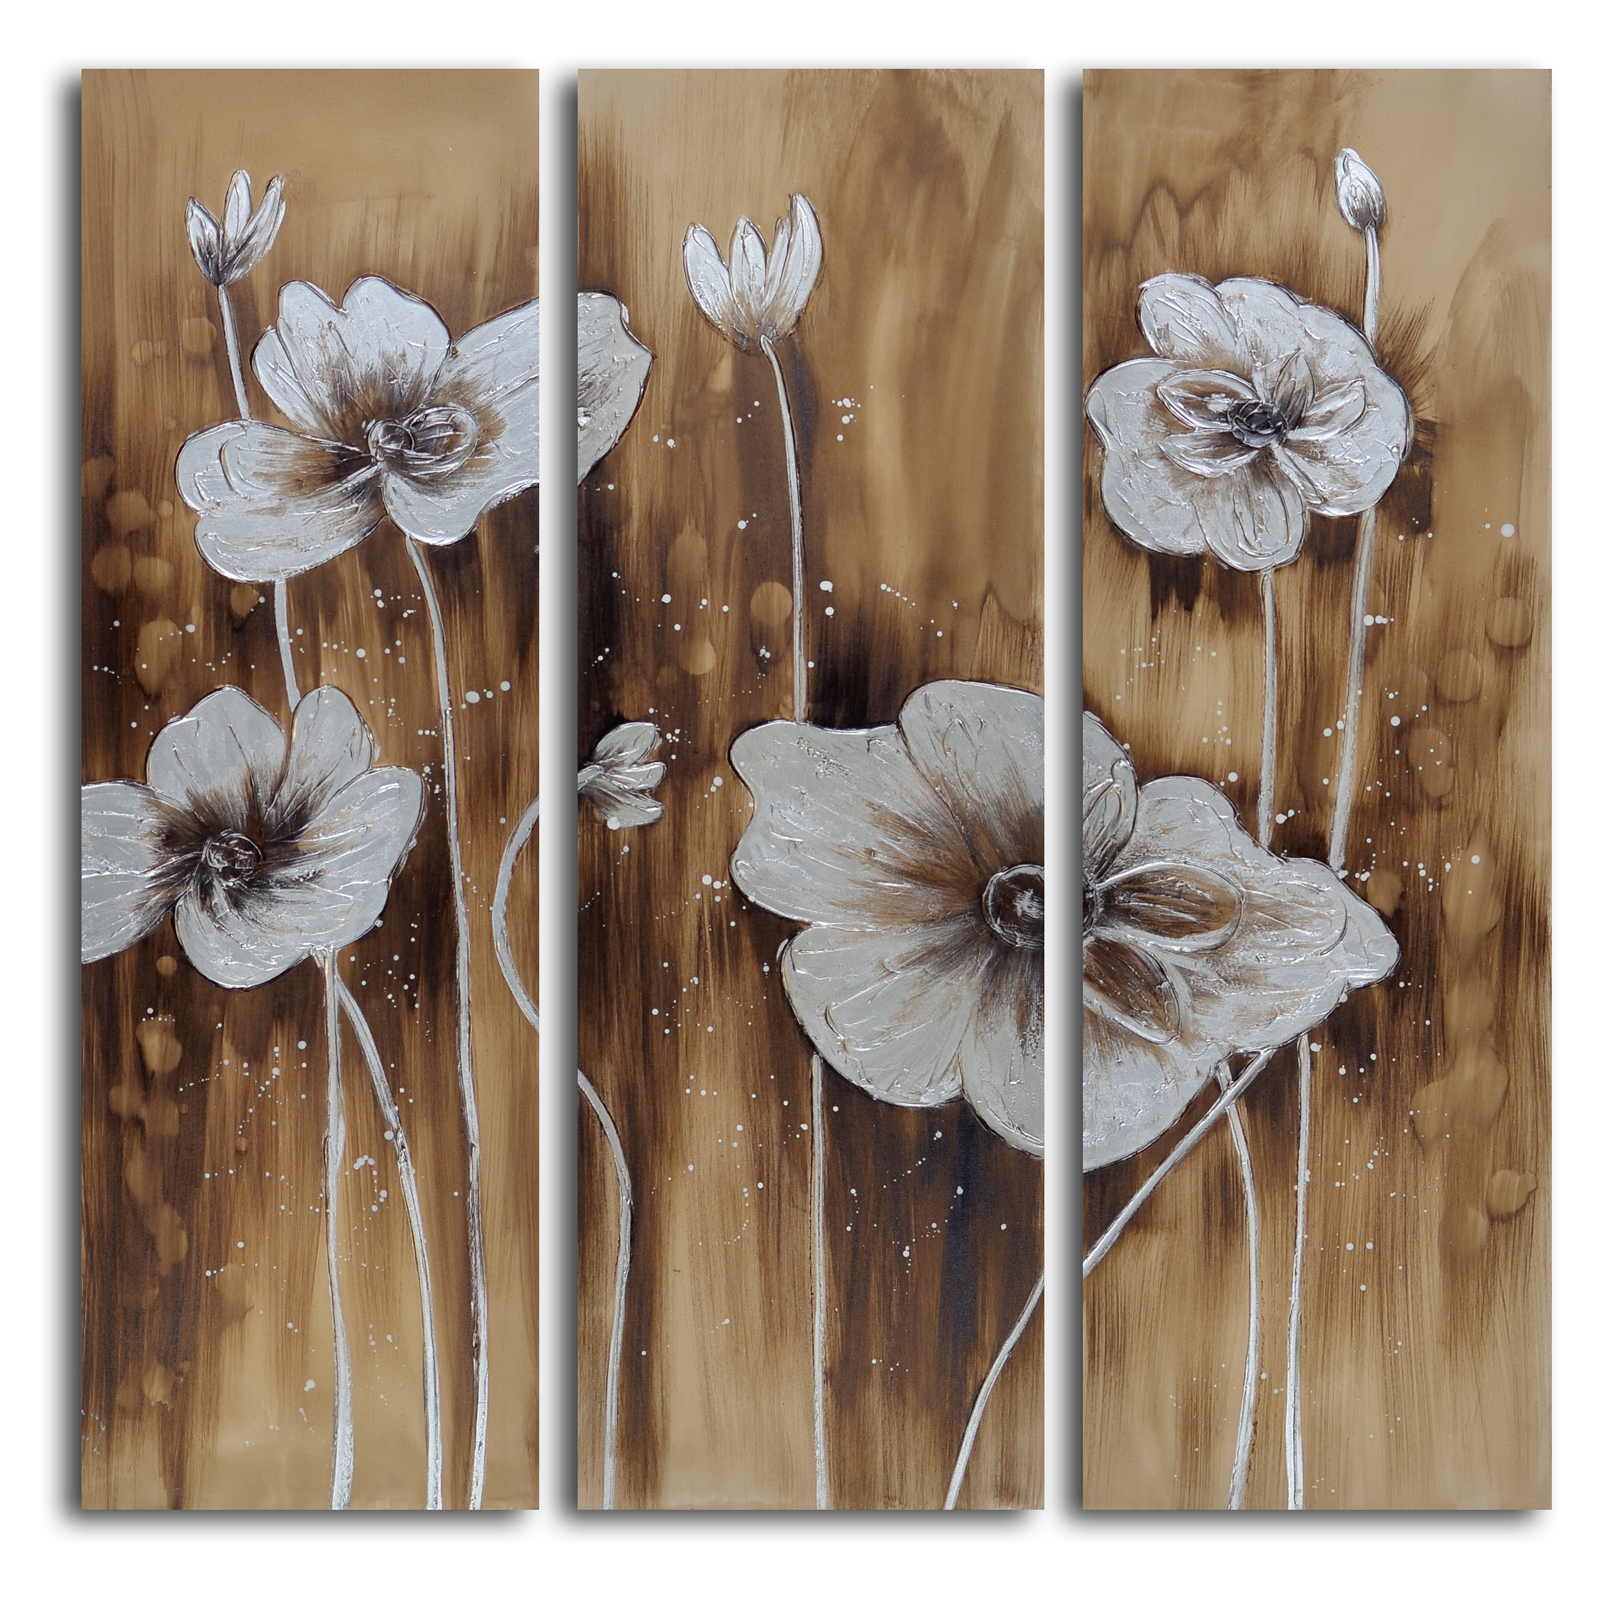 & Muddied Floral March 3-Piece Canvas Wall Art Set | Hayneedle